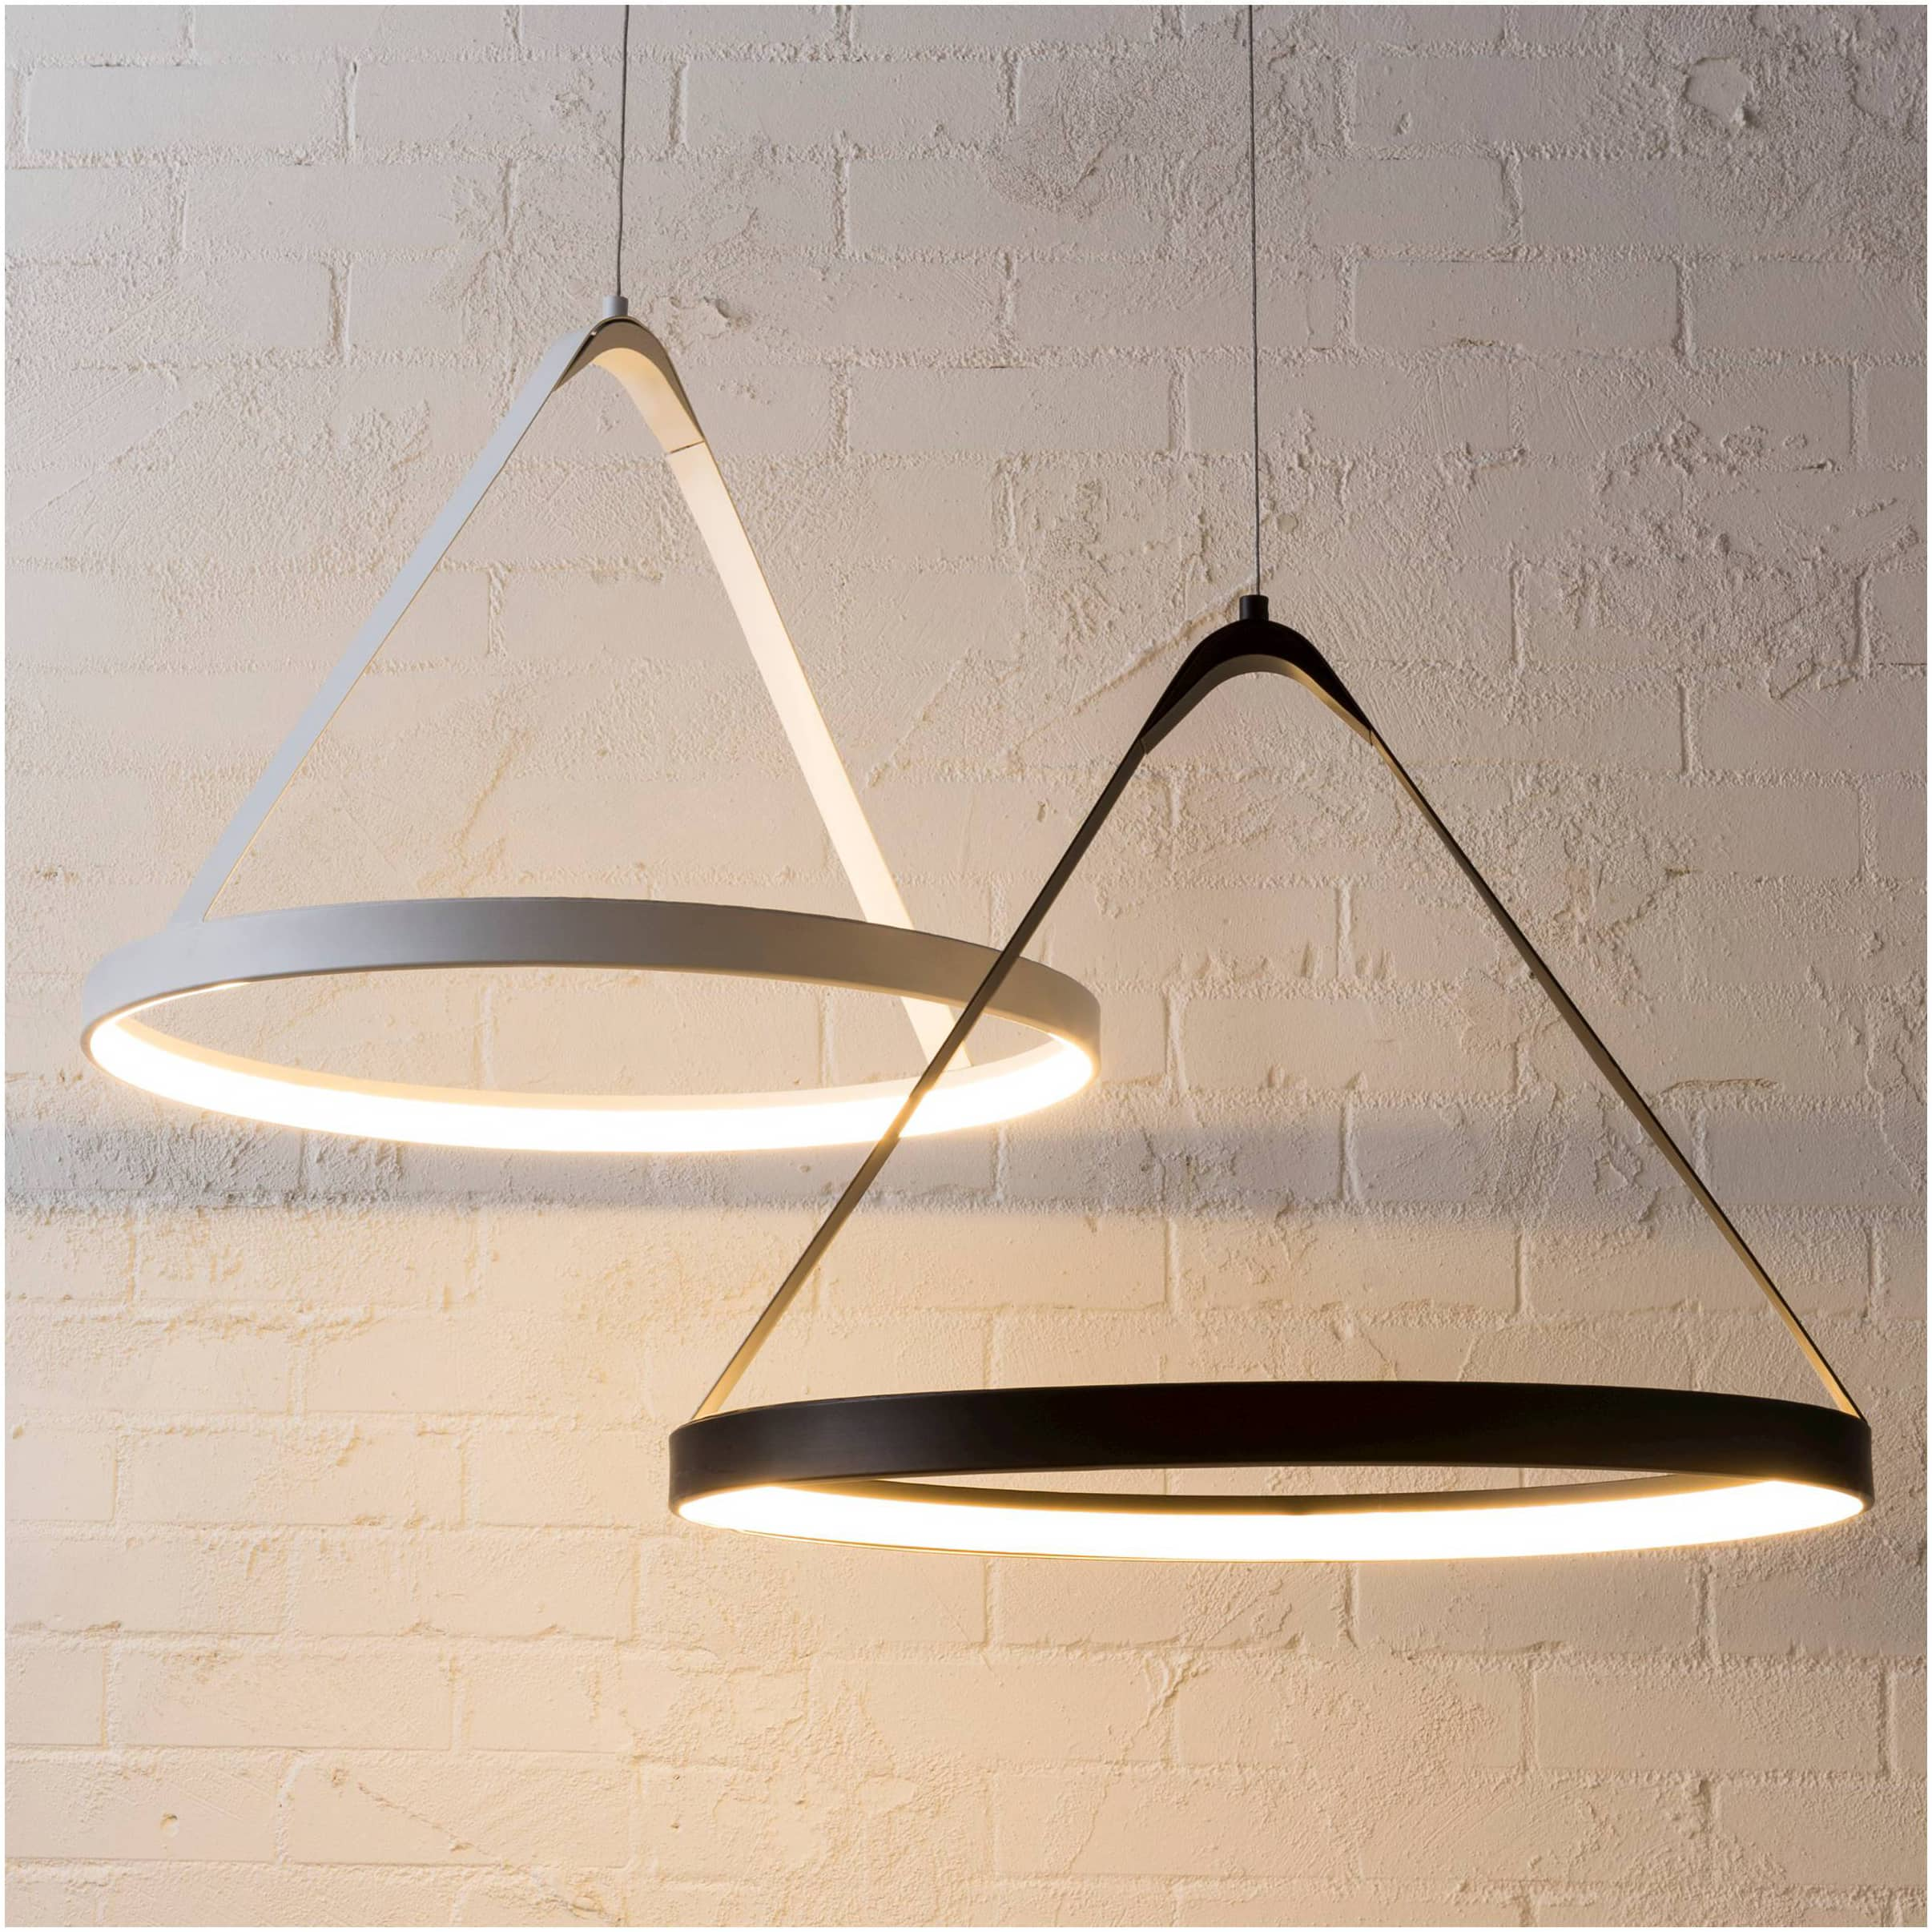 Cheap Thrills Best Lamps Amp Lighting At Target Apartment